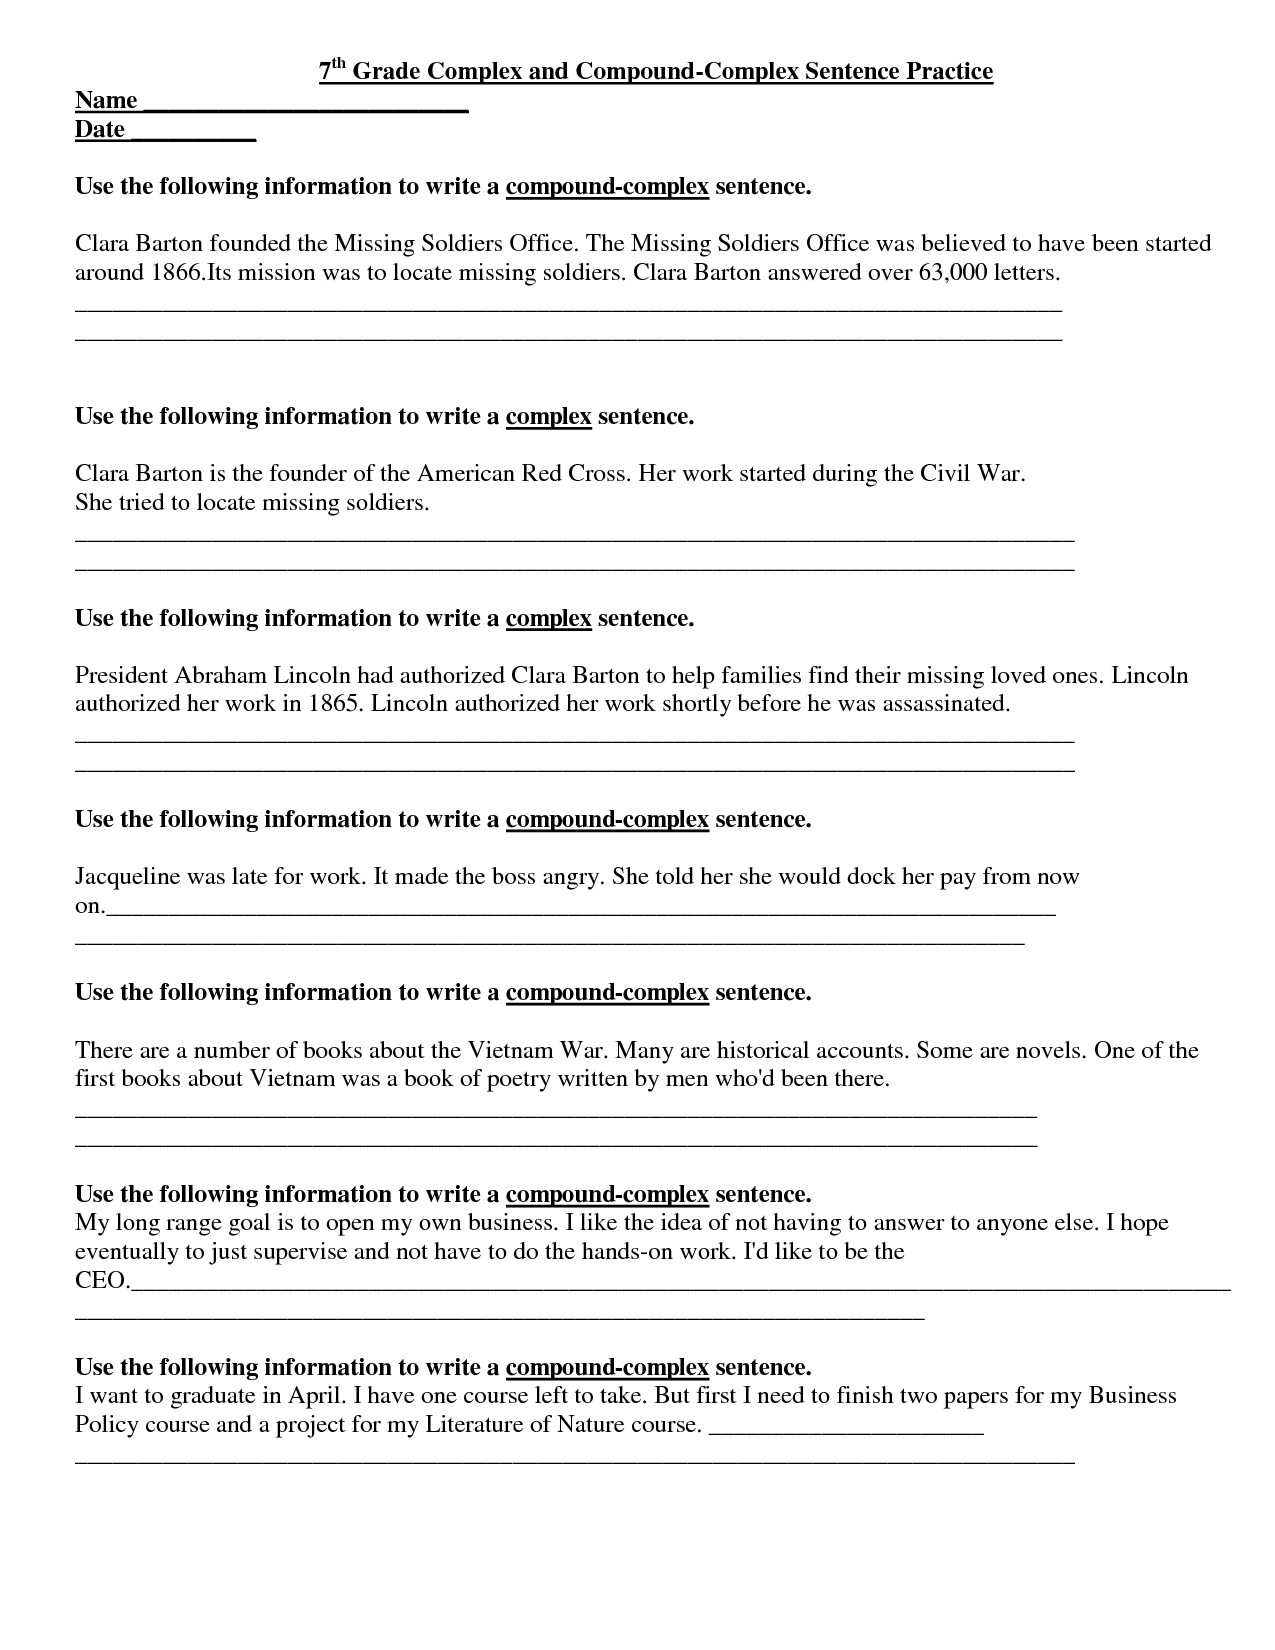 7th Grade History Worksheet Free